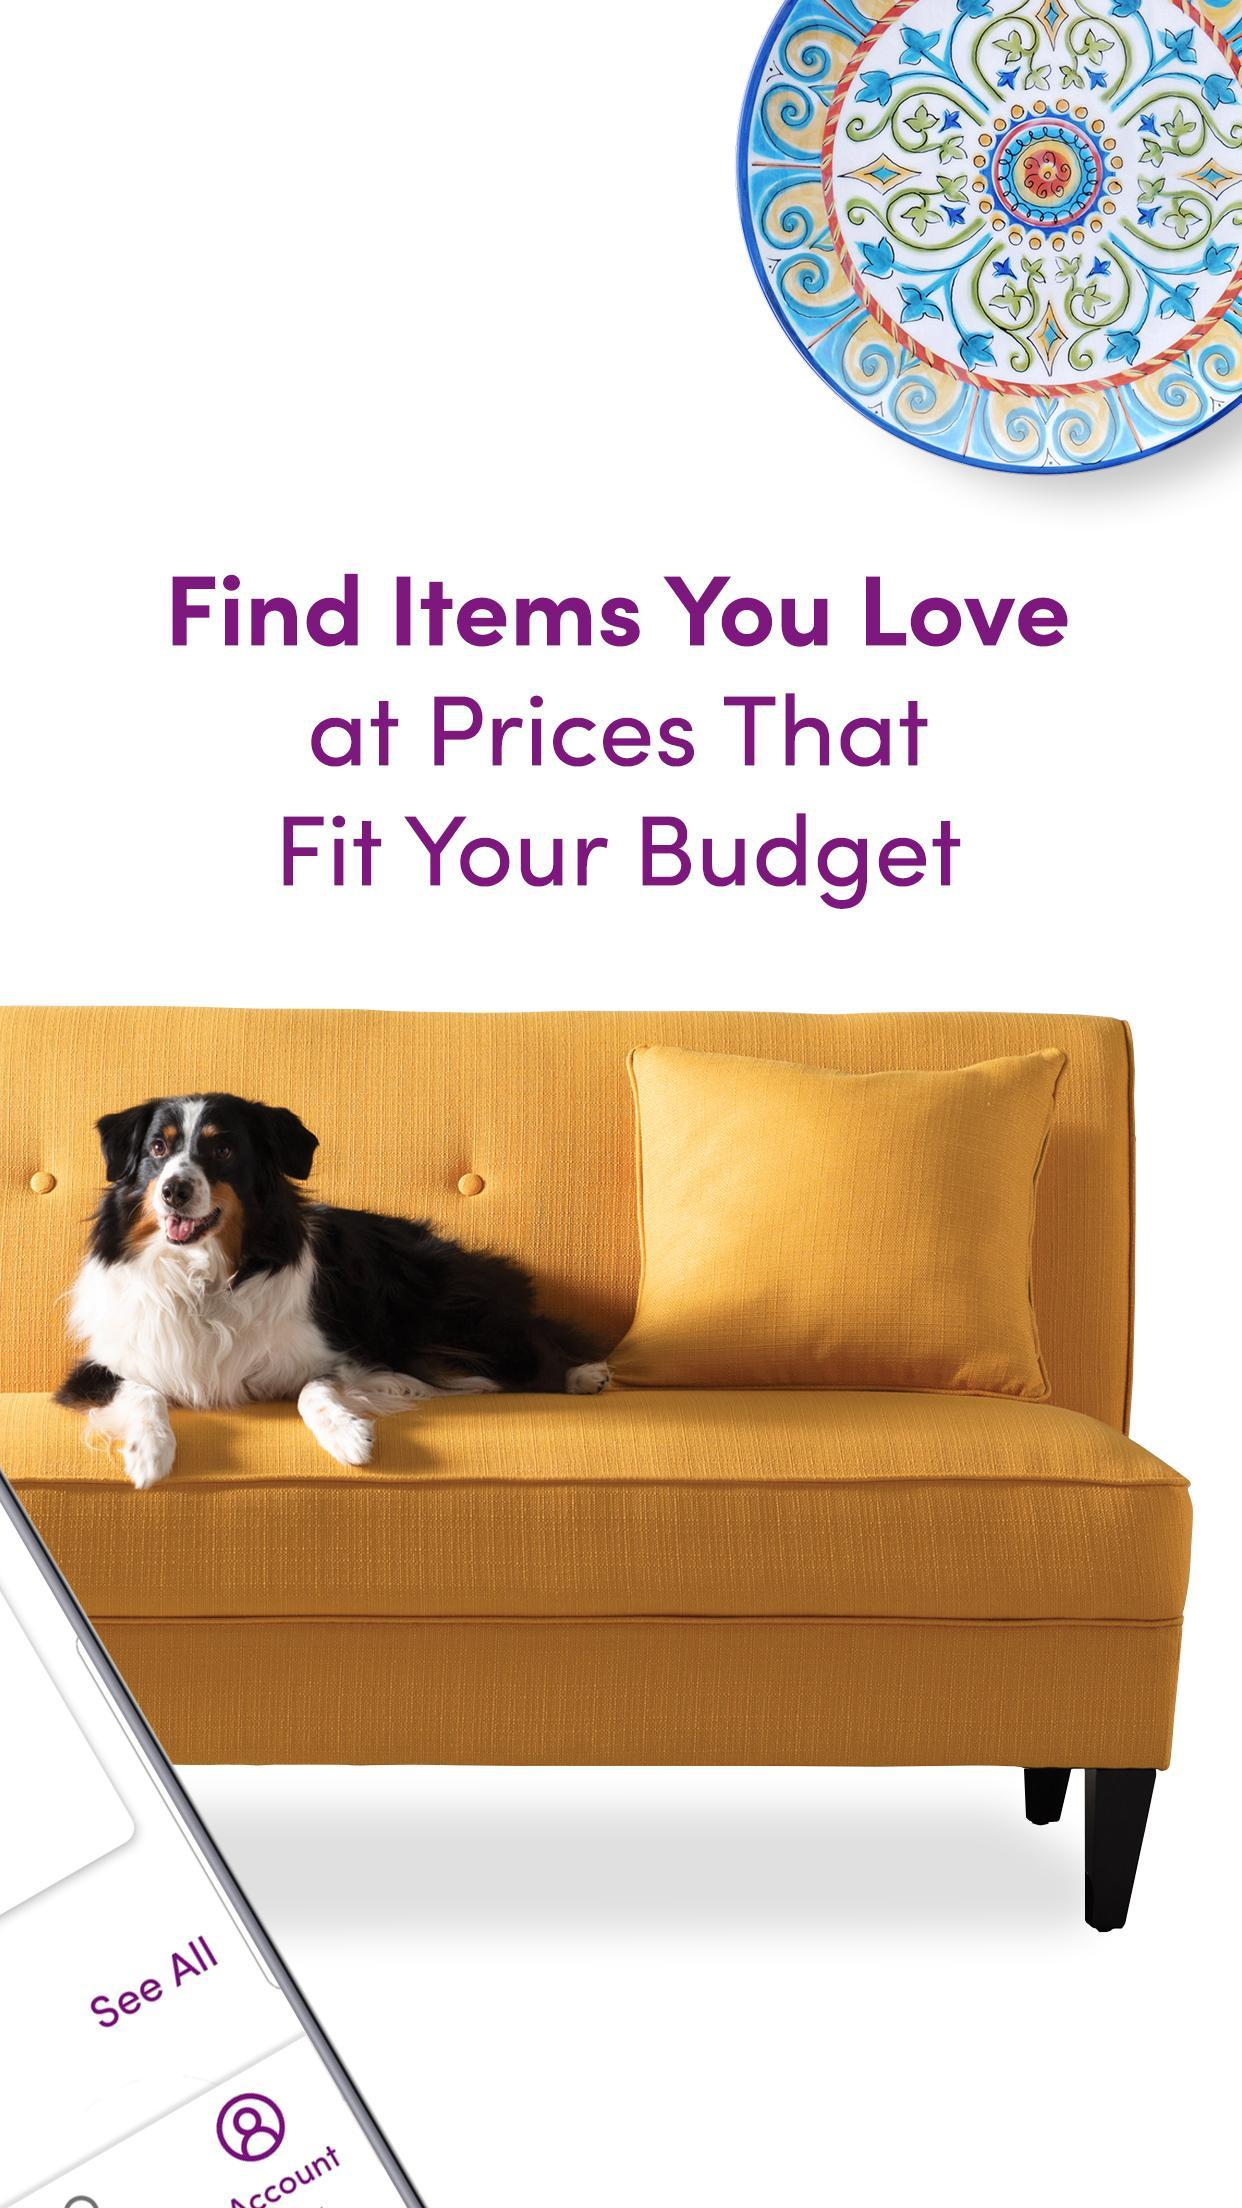 Wayfair Shop All Things Home 5.2.4 Screenshot 2